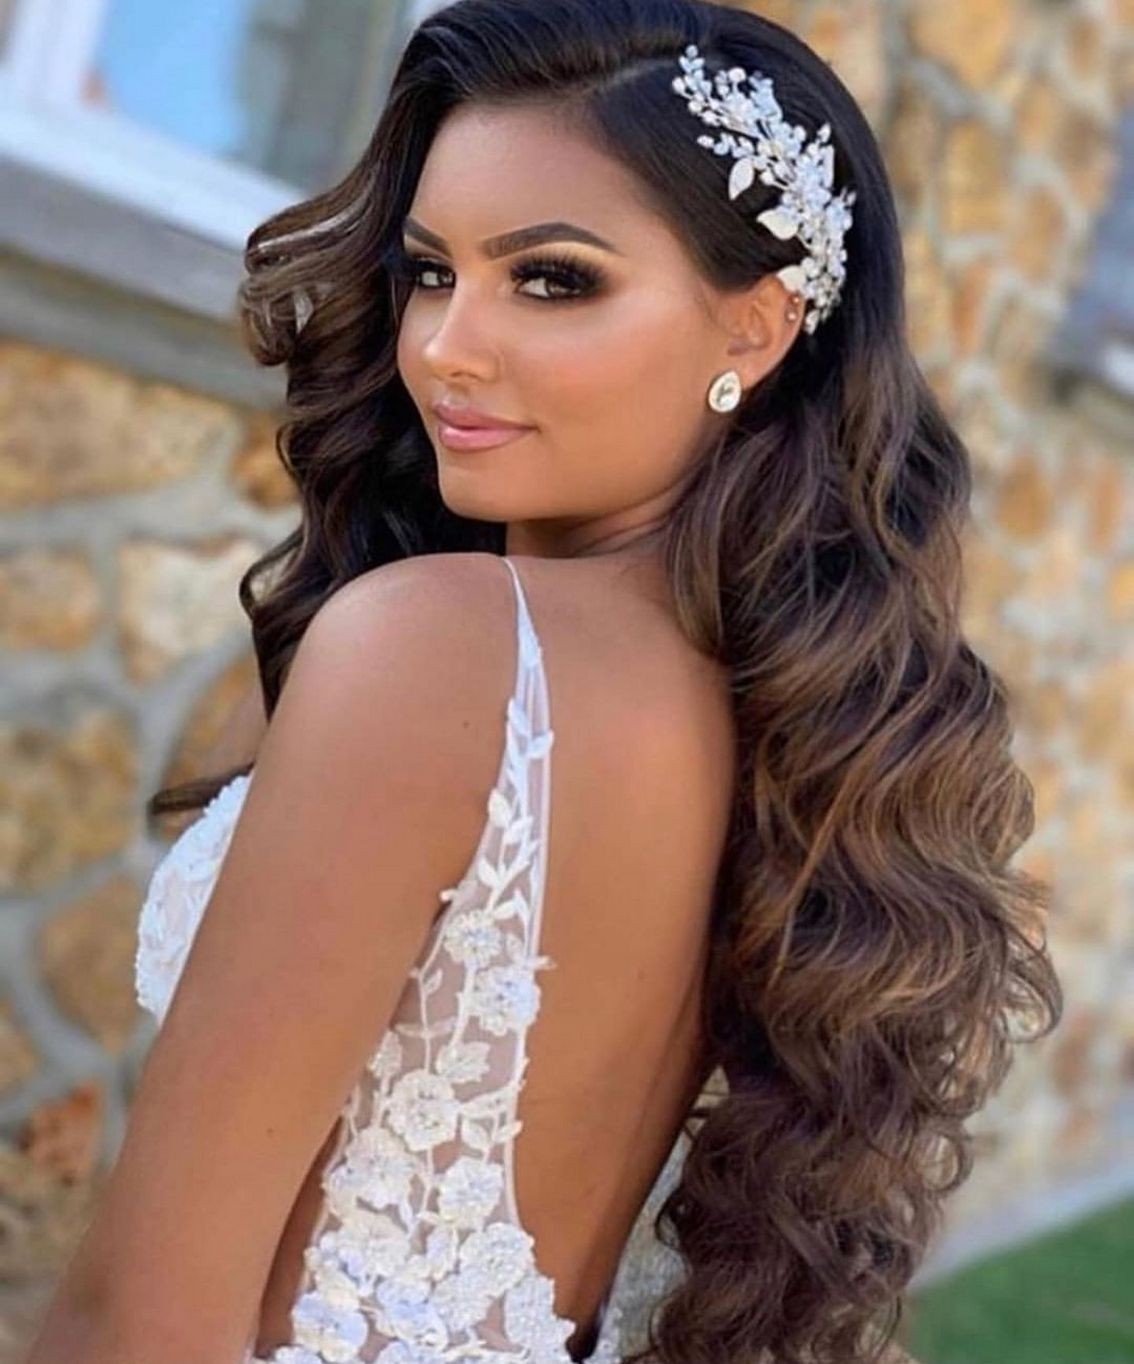 50+ Ideas Gorgeous Bridal Headpiece for Your Big Day